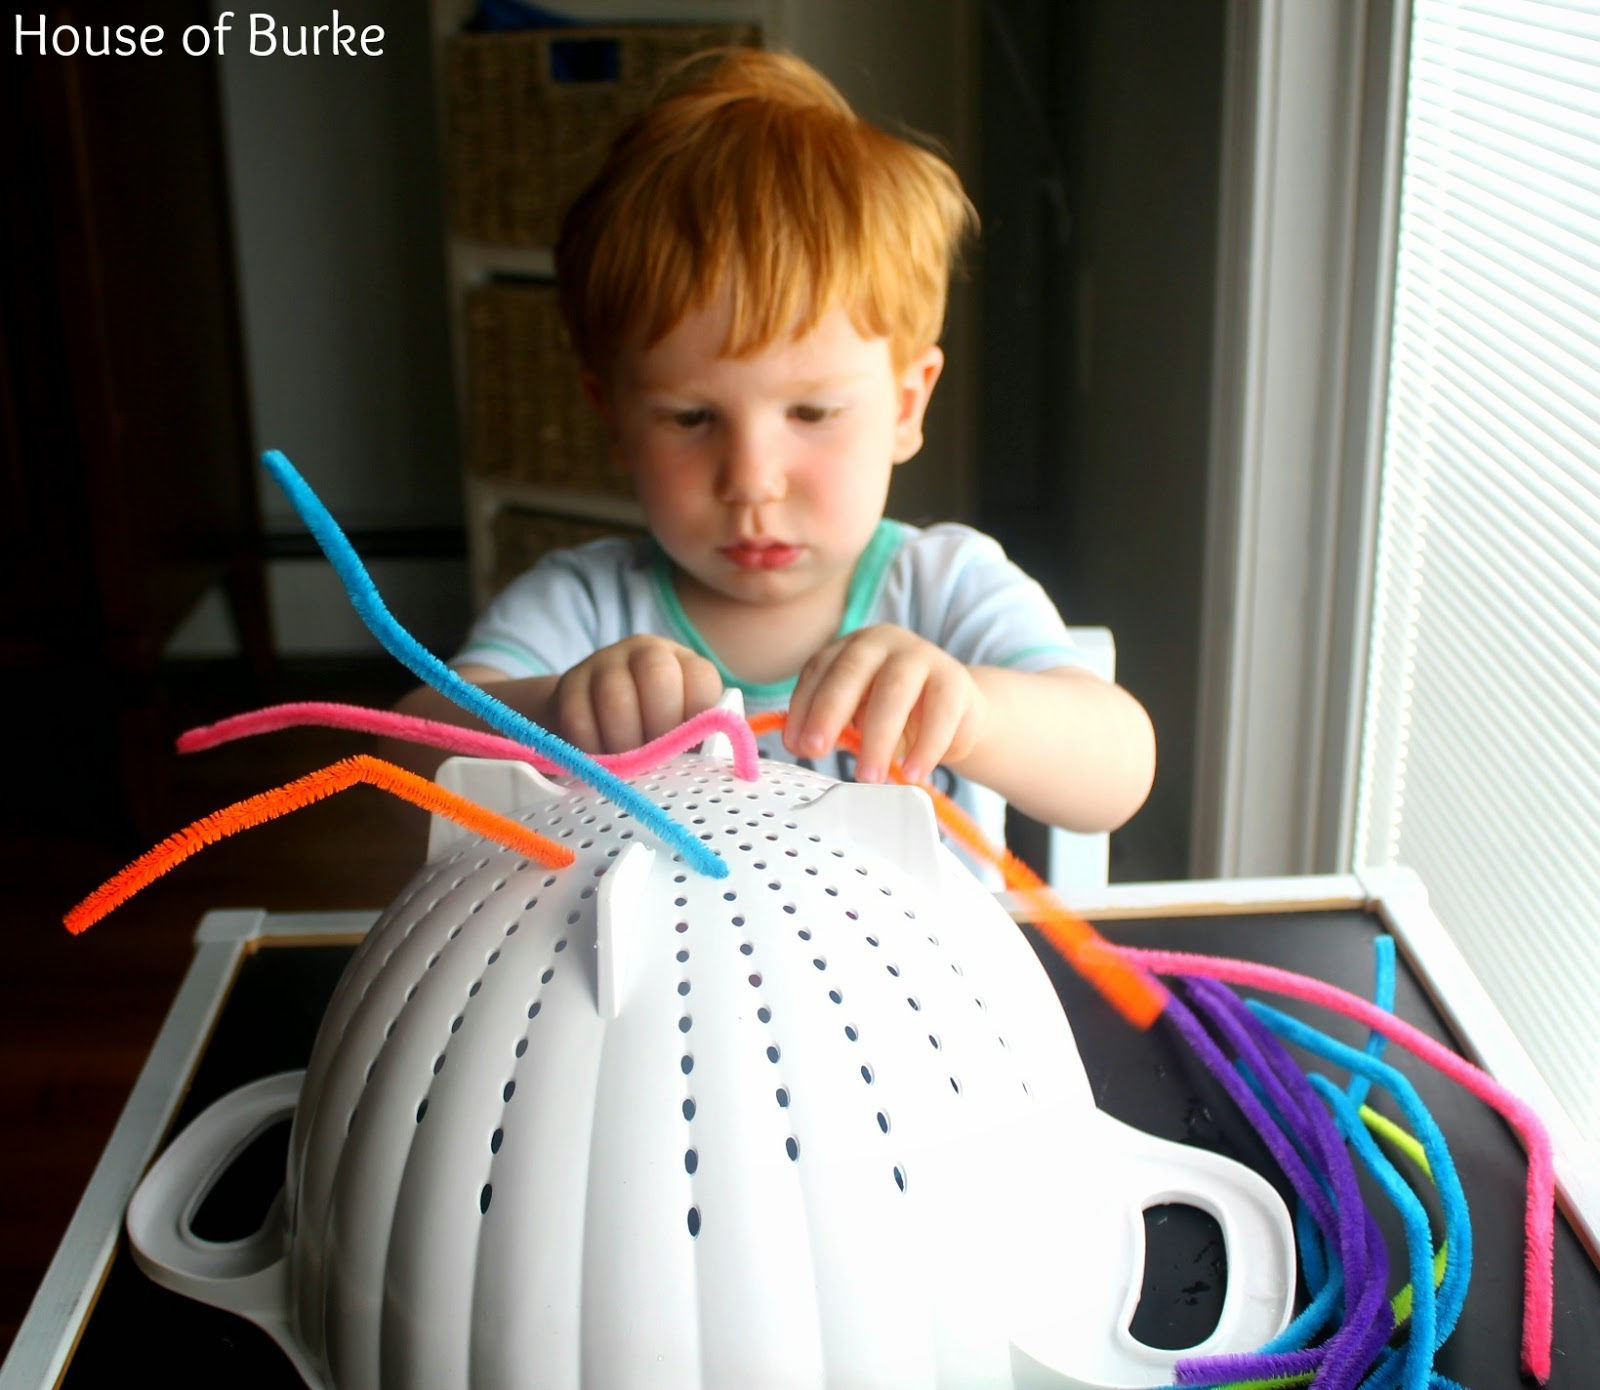 House of burke pipe cleaner fine motor activity for toddlers for Small motor activities for infants